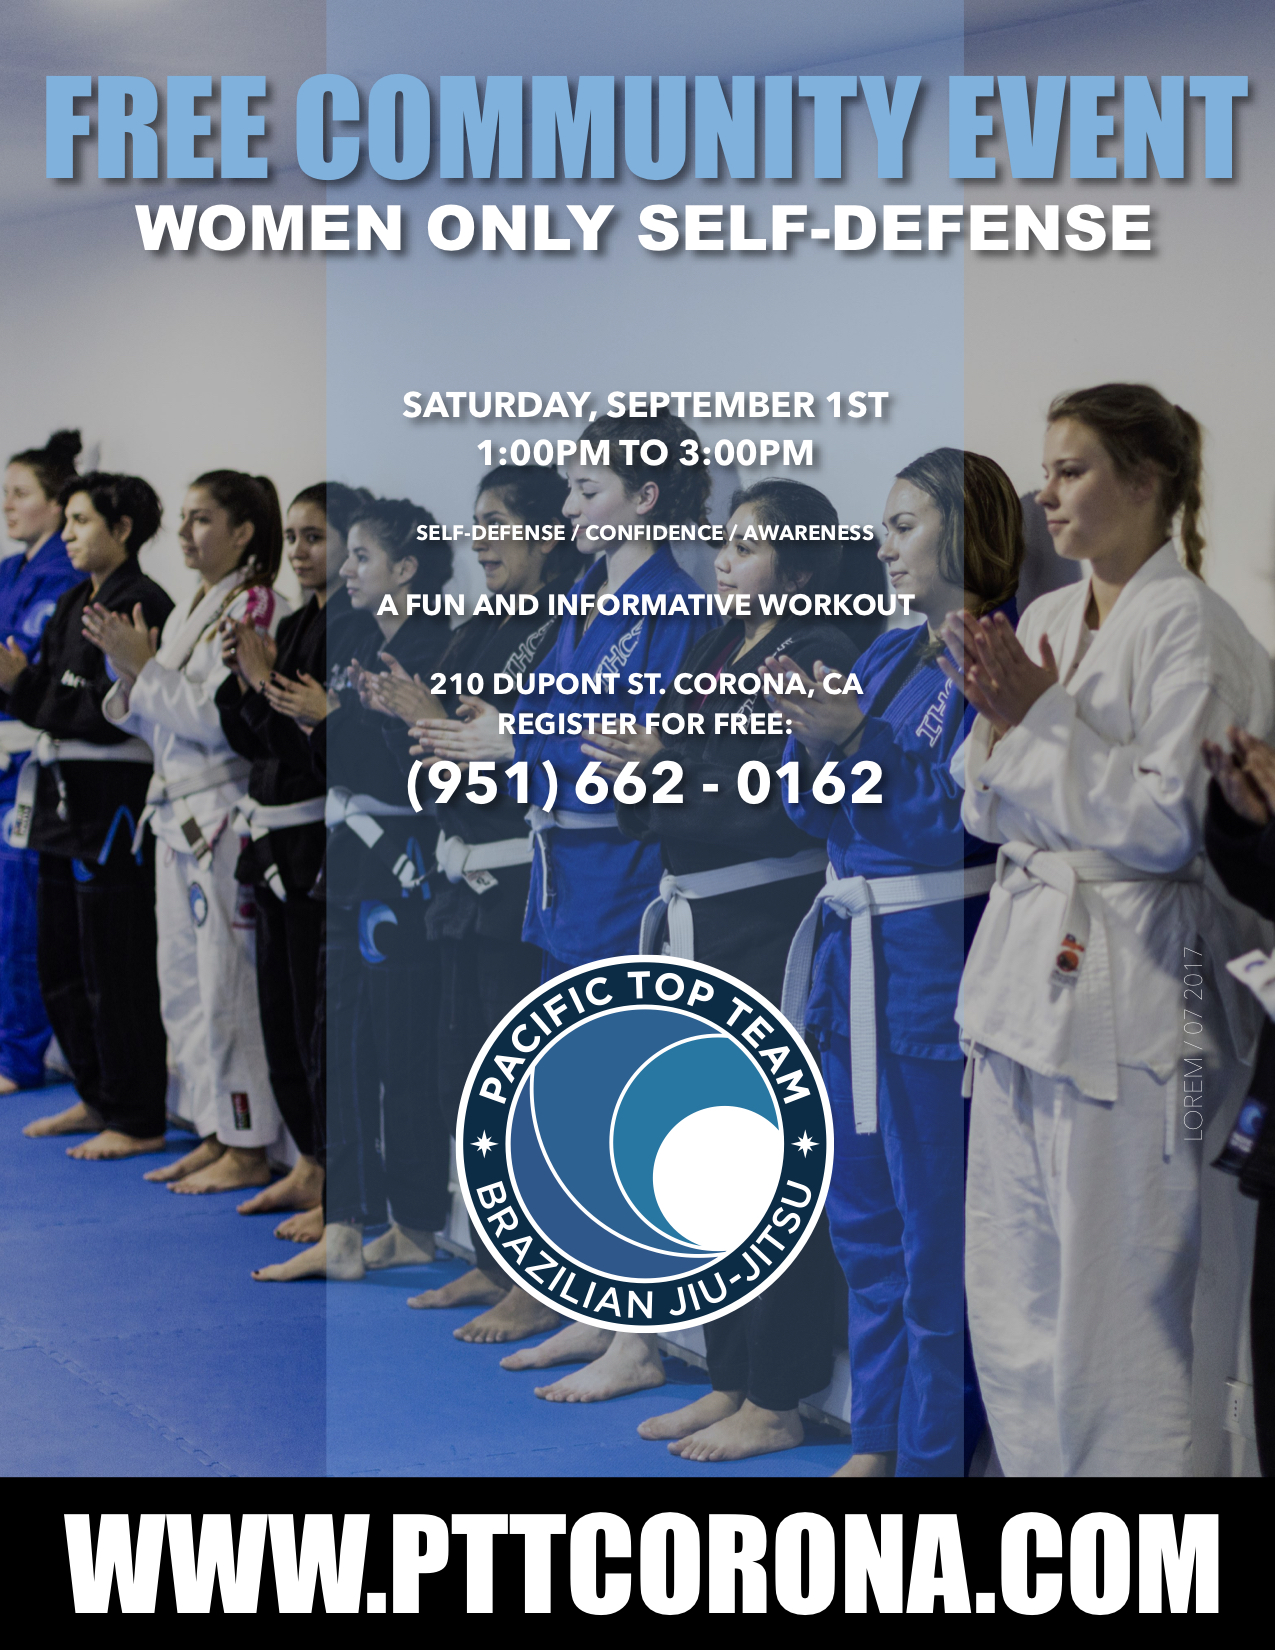 WOMEN ONLY Brazilian jiu jitsu corona